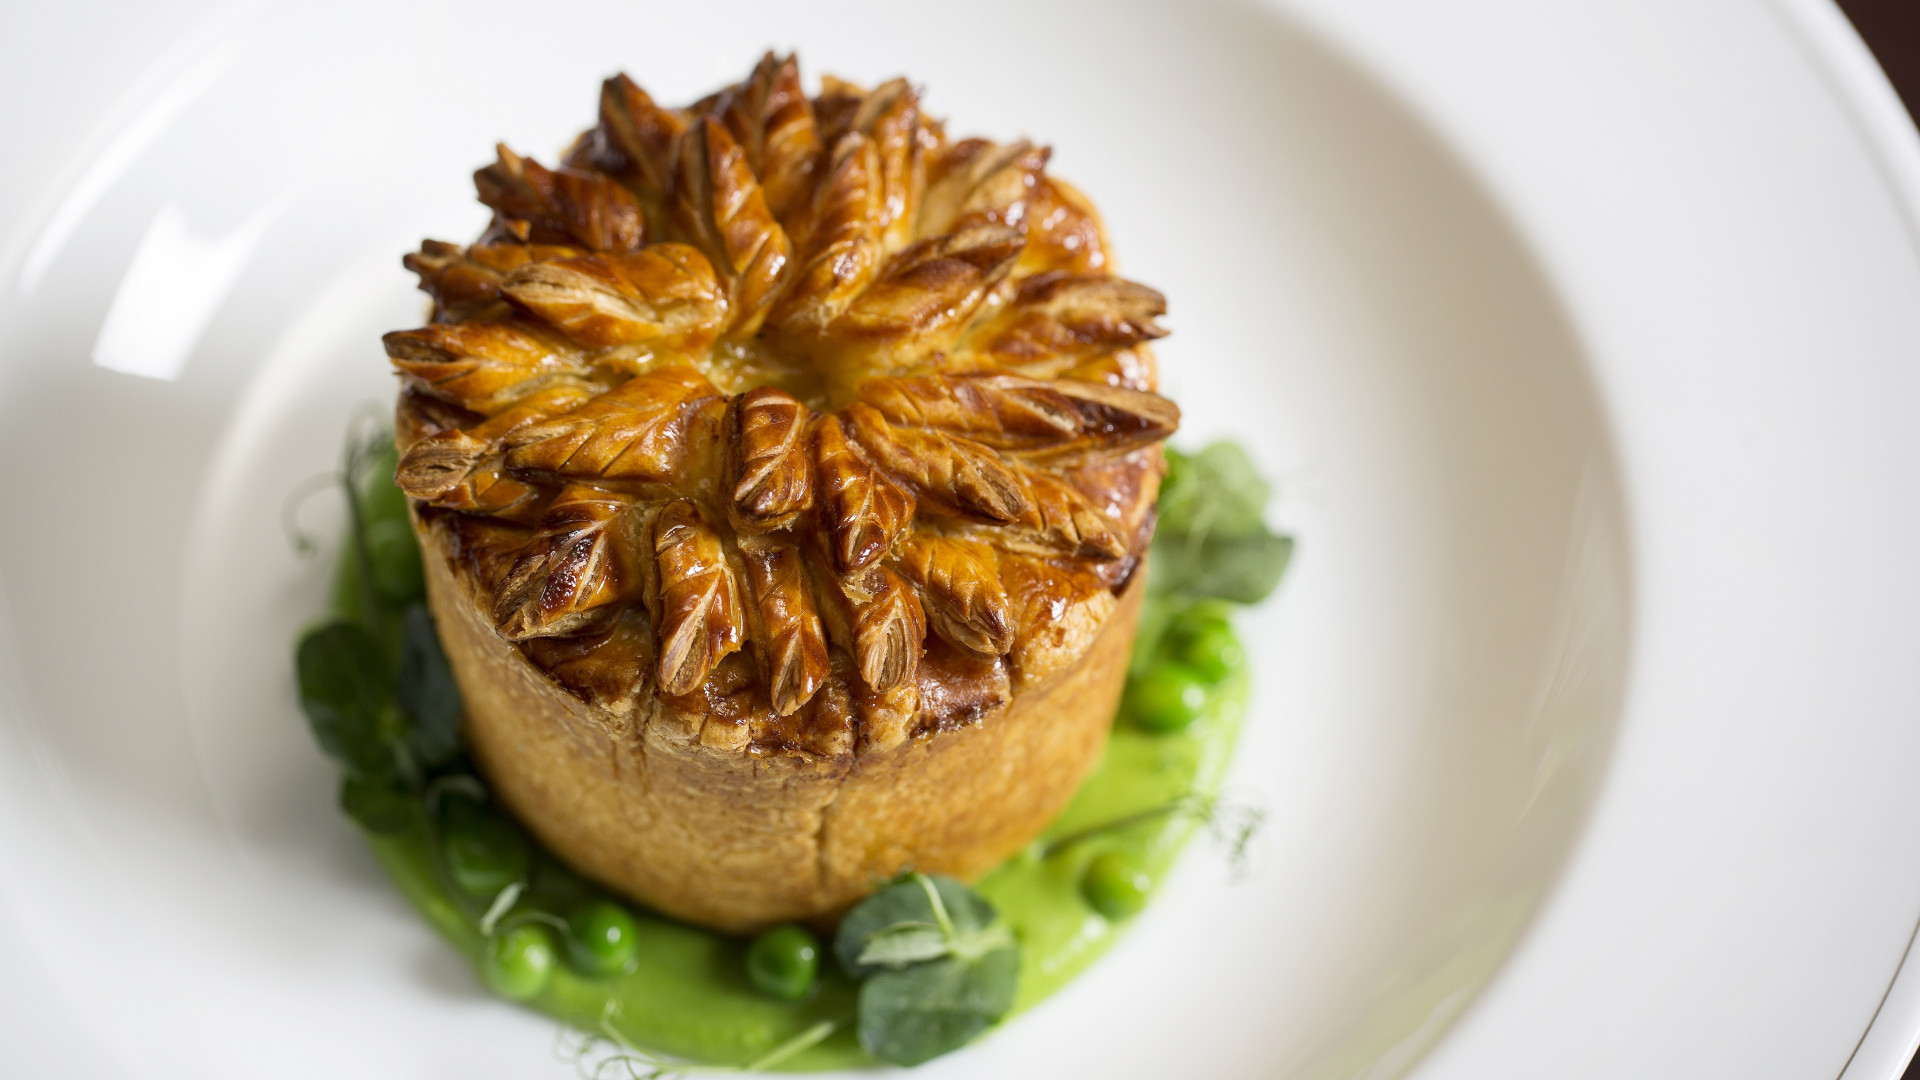 A pie from Holborn Dining Room